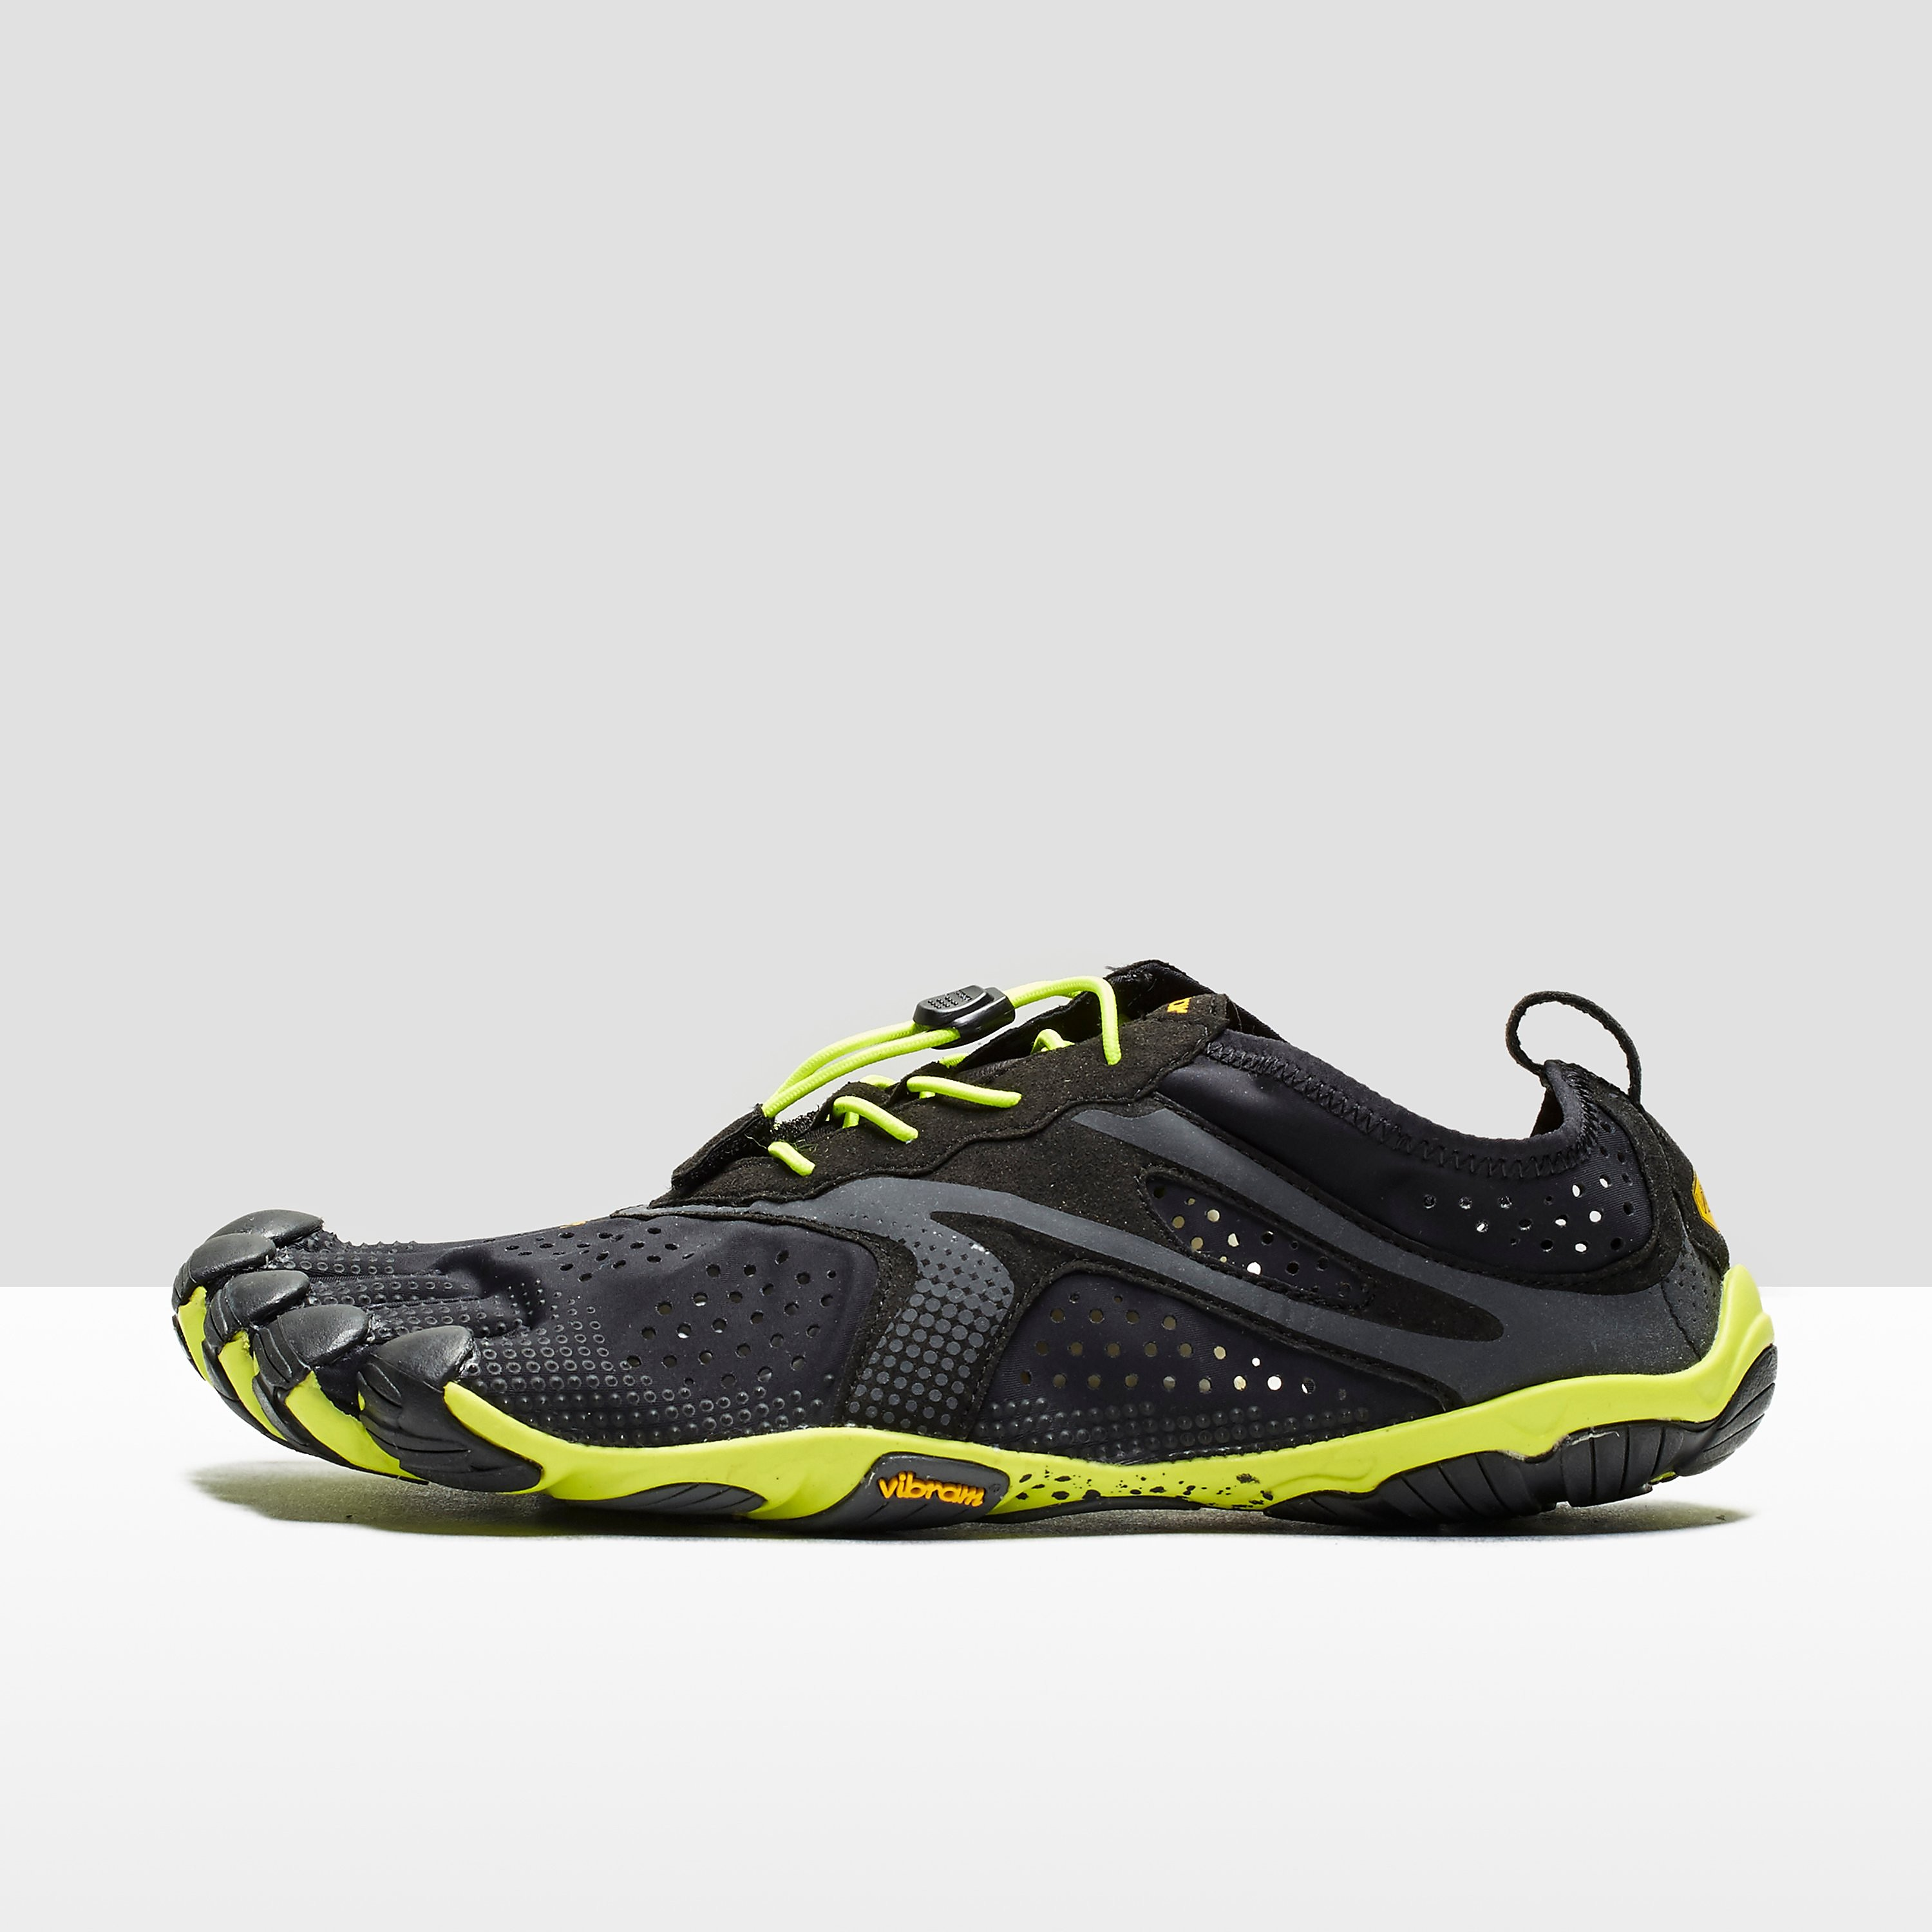 Vibram Five Fingers V-Run Men's Running Shoes